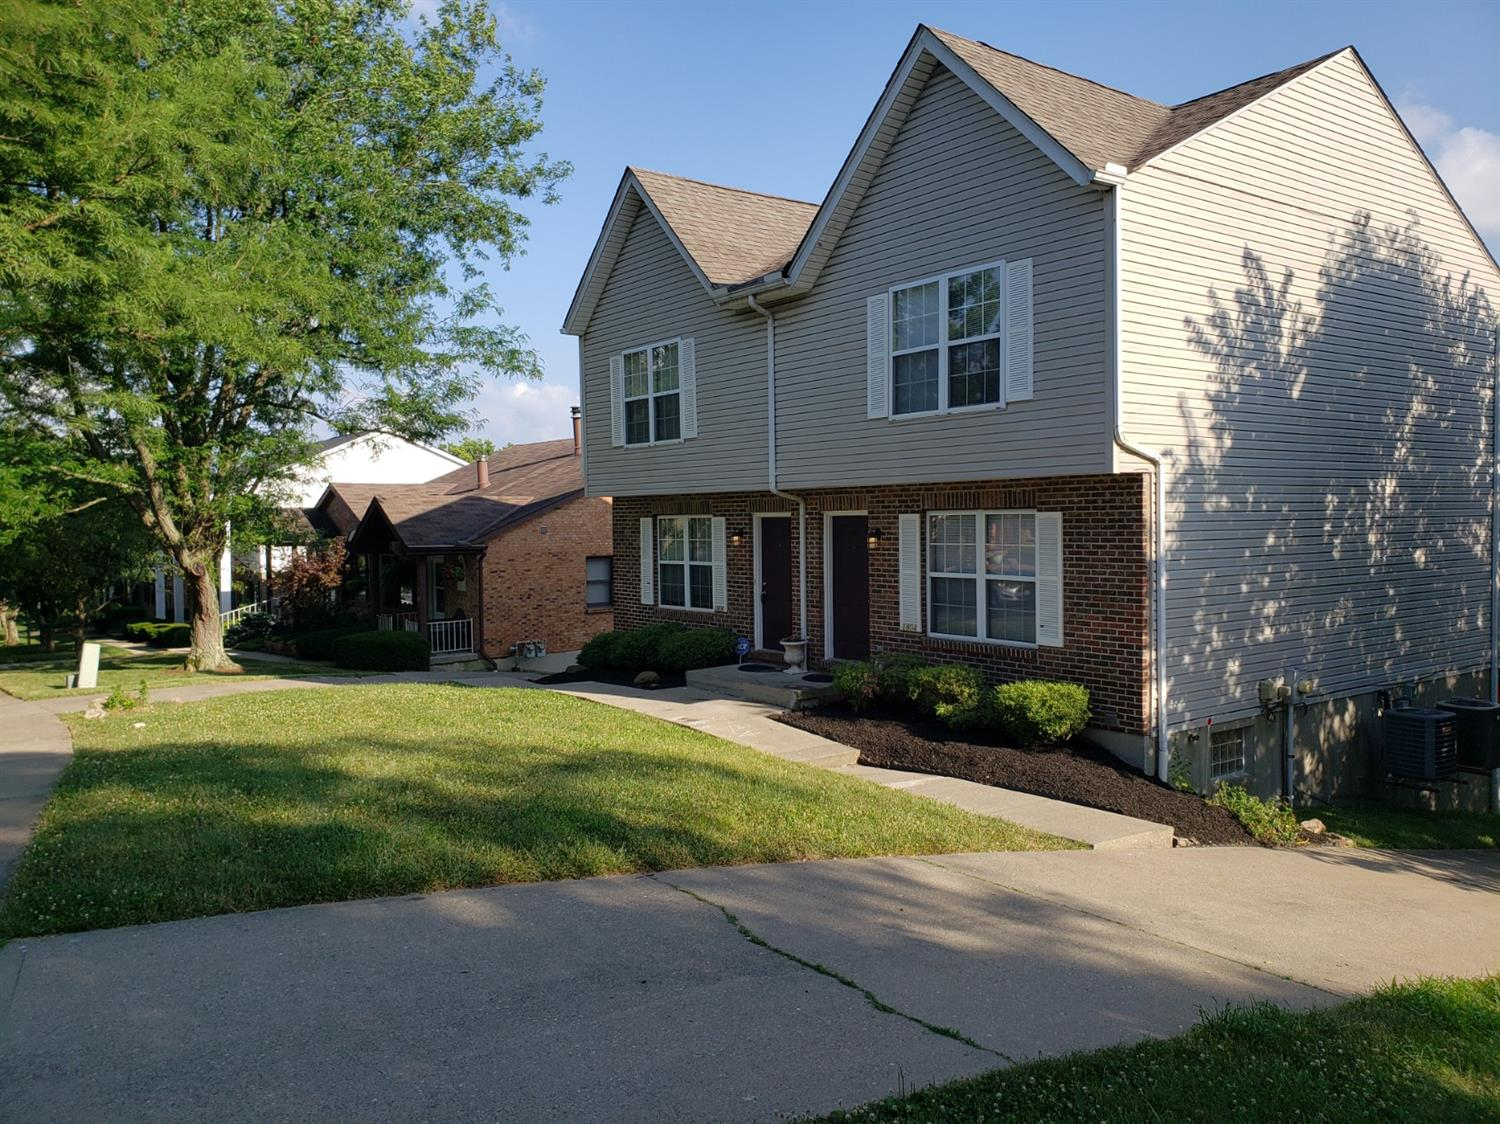 Photo 2 for 1804 1806 Tuxworth Ave Covedale, OH 45238